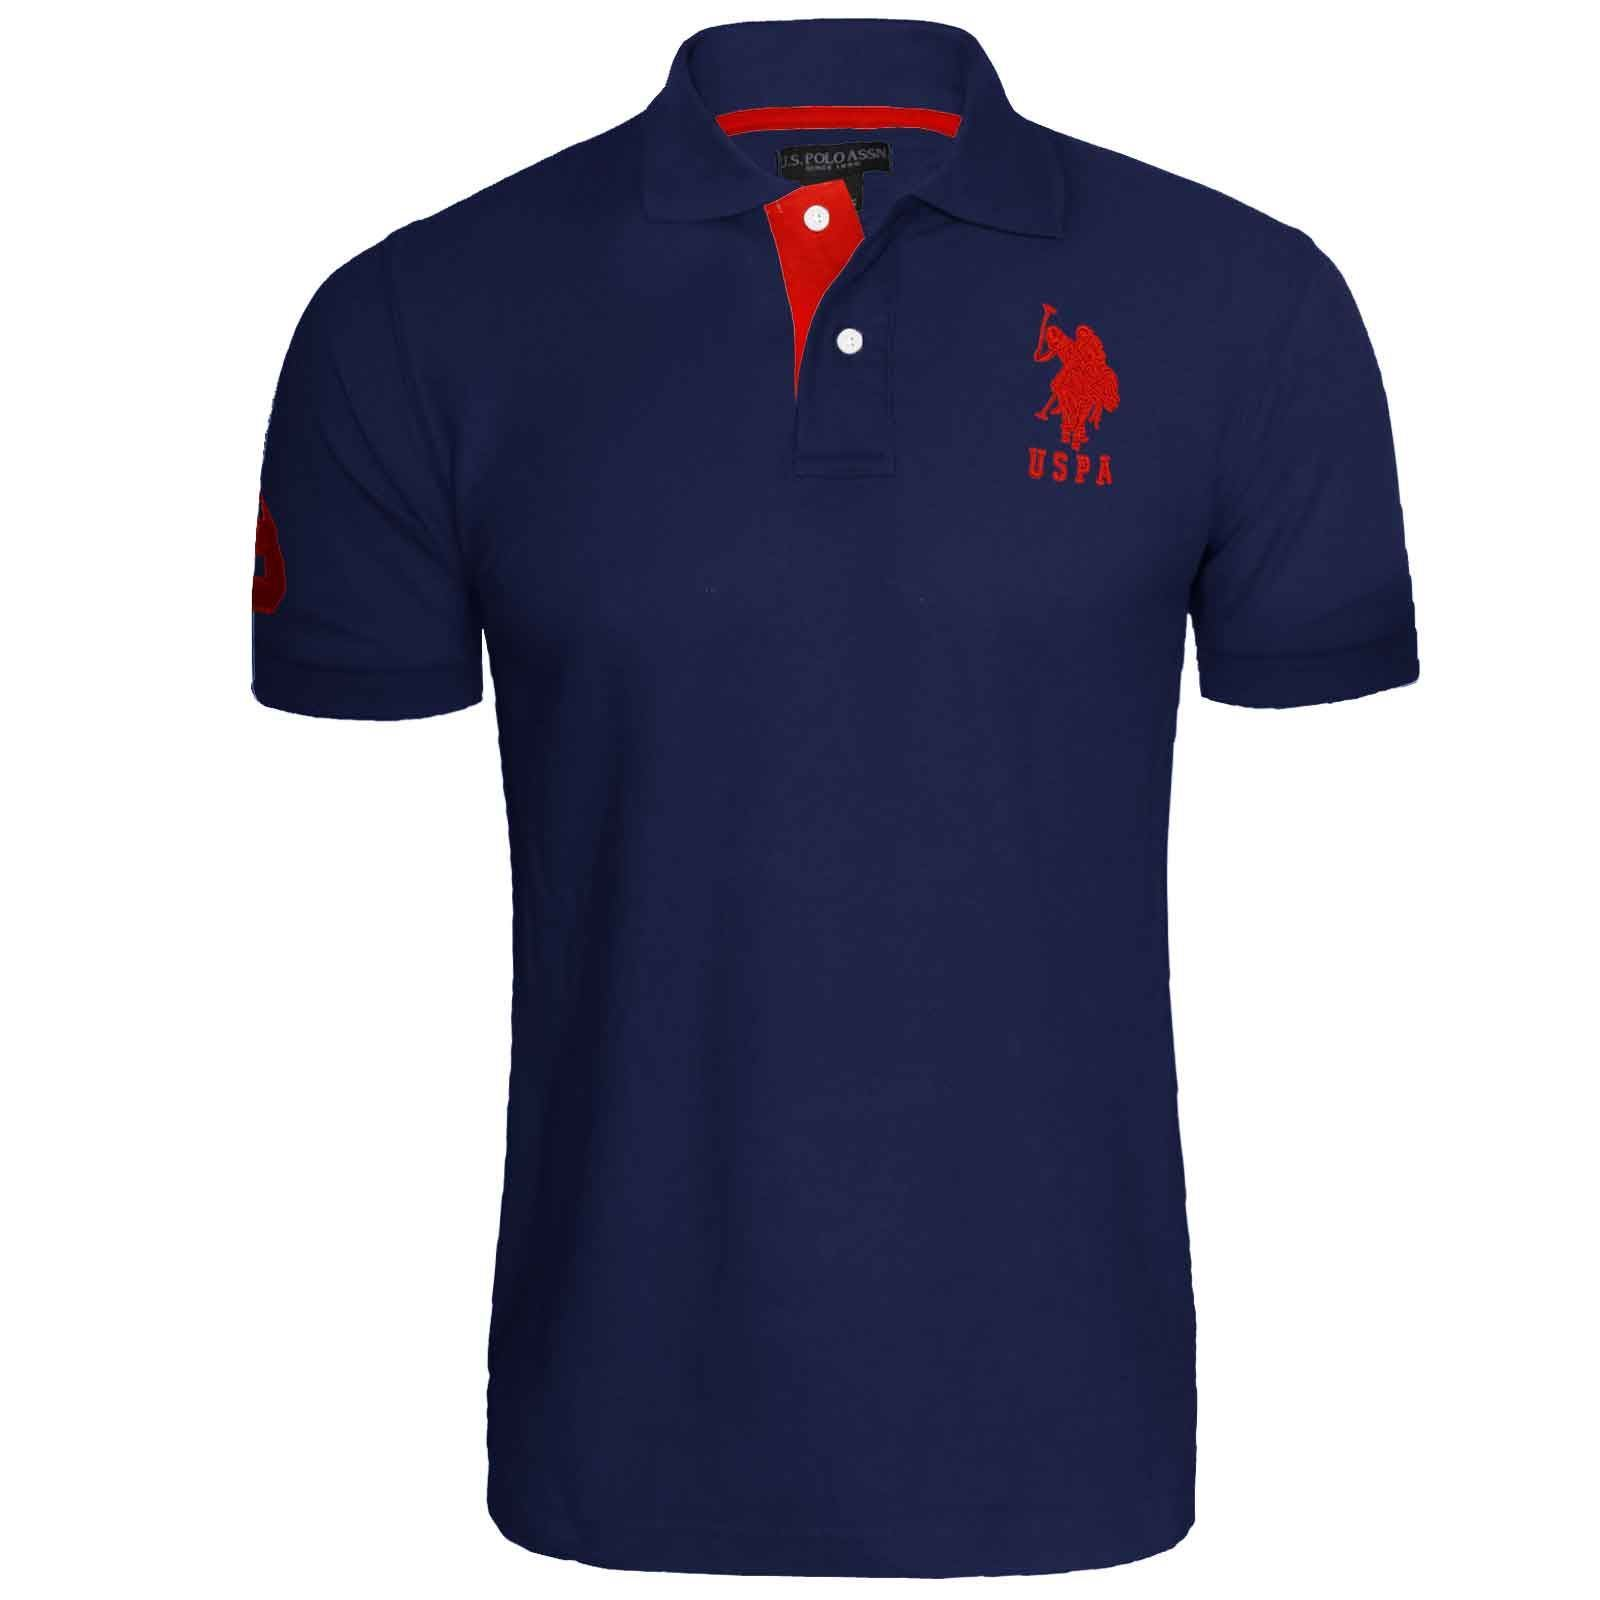 New mens us polo assn pique t shirt shirt branded top for Mens polo shirts online